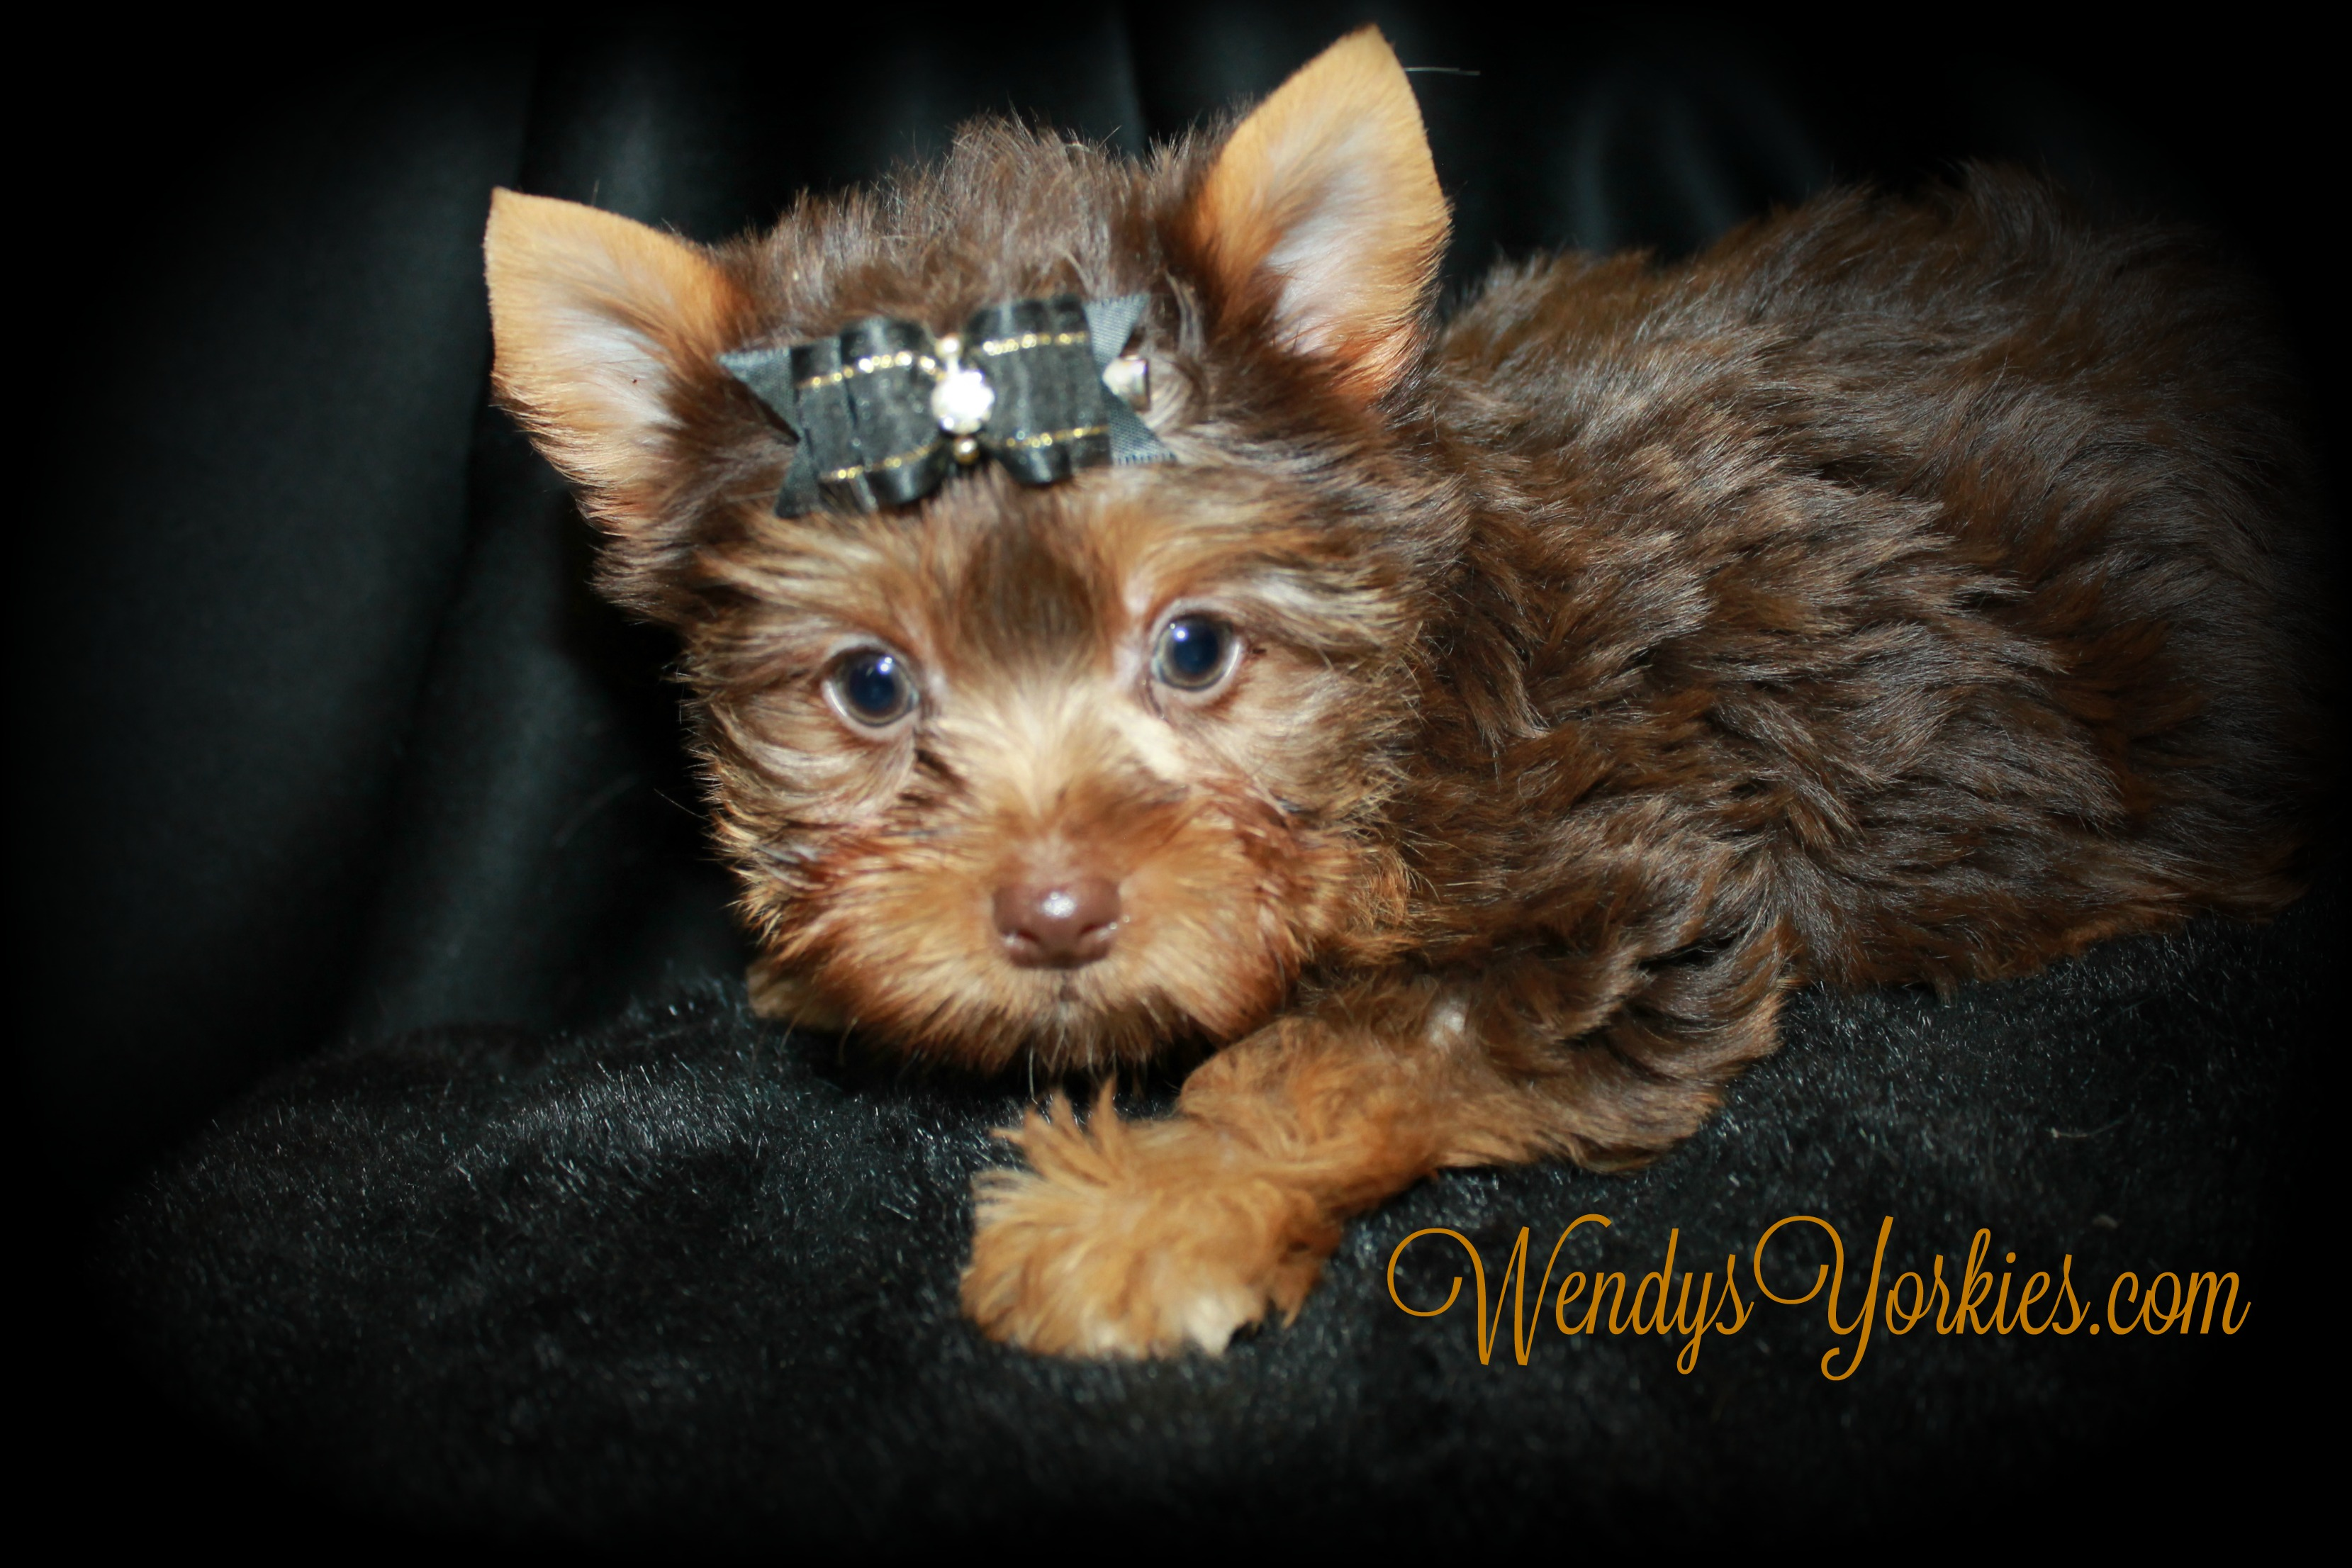 Teacup Chocolate Yorkie puppy for sale, WendysYorkies.com, Skeeter m1